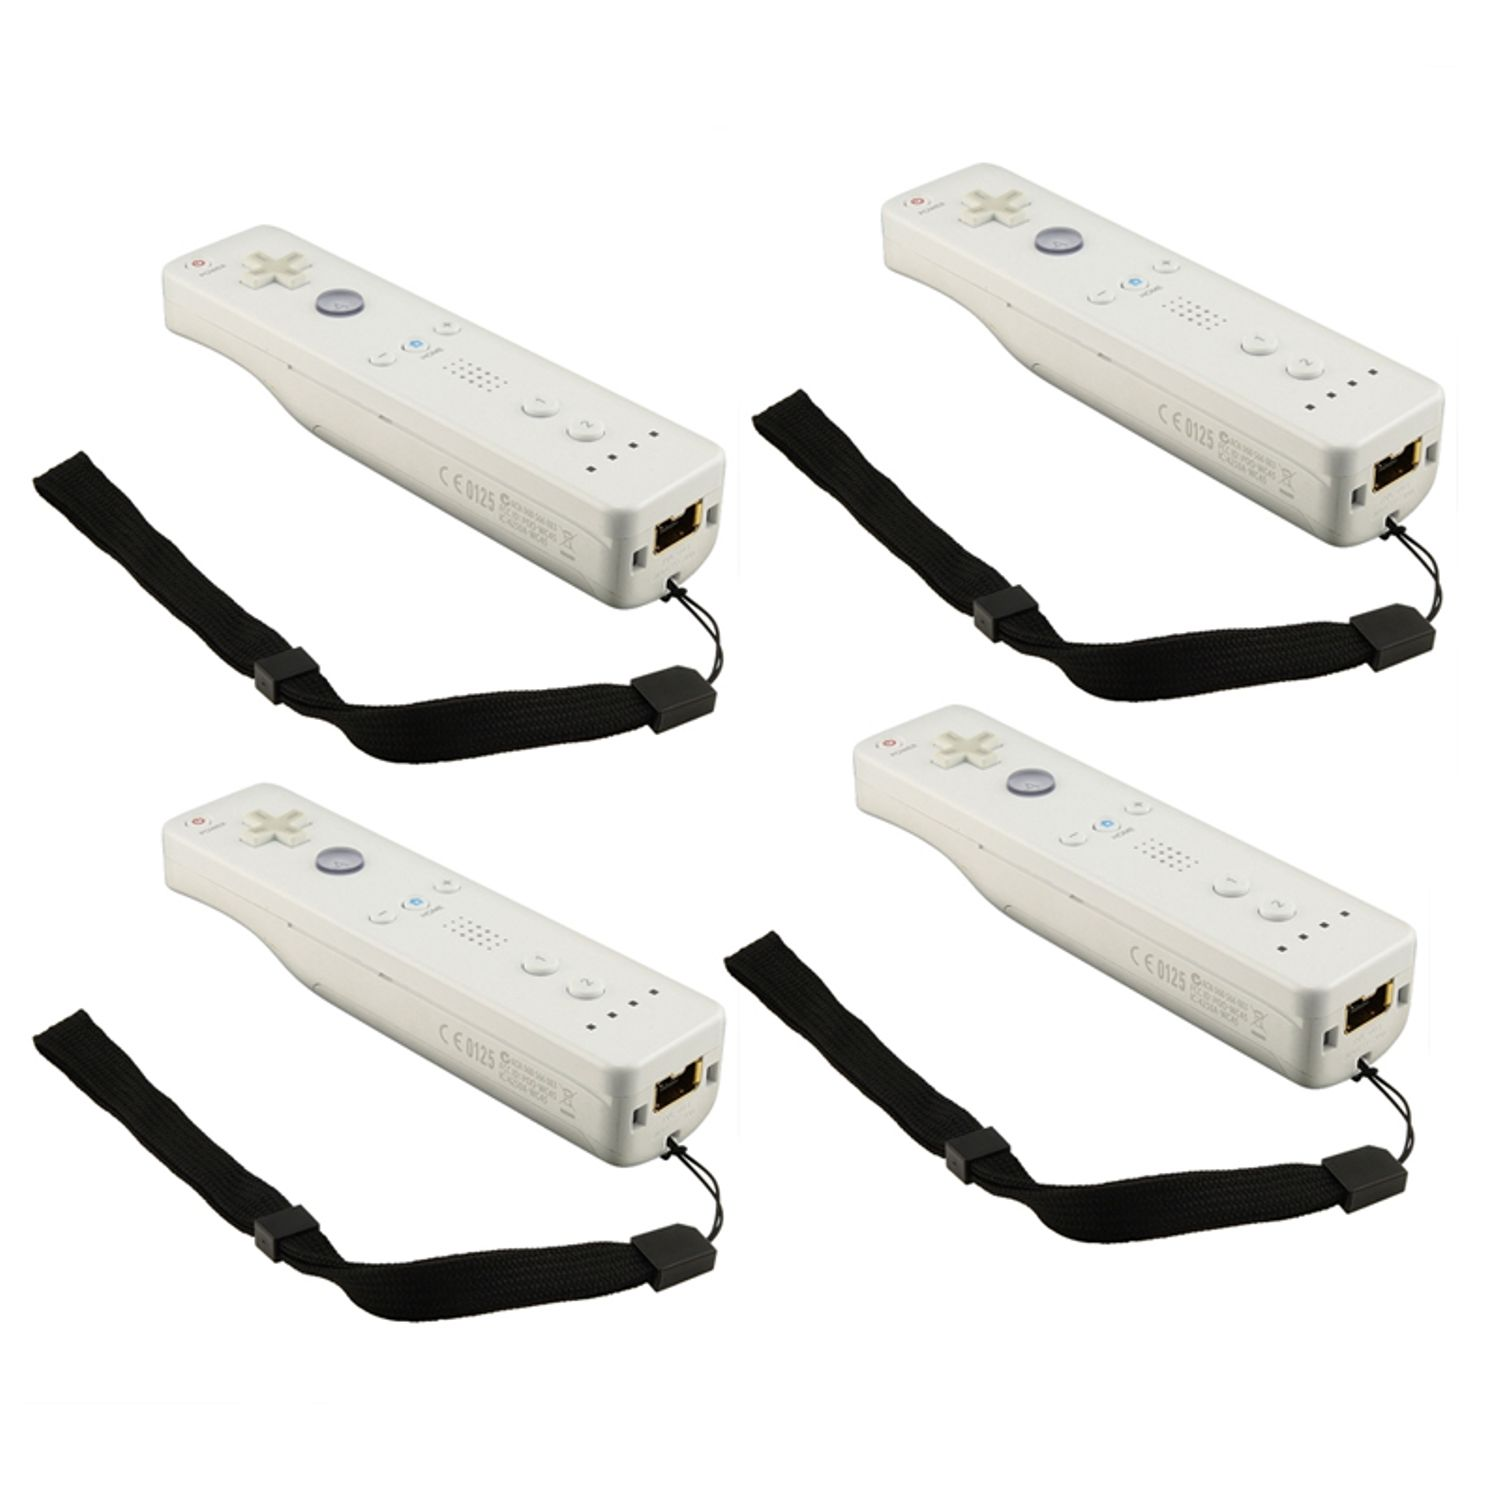 Insten Black Wrist Strap For Nintendo Wii Remote Control / Controller (4 Pack)